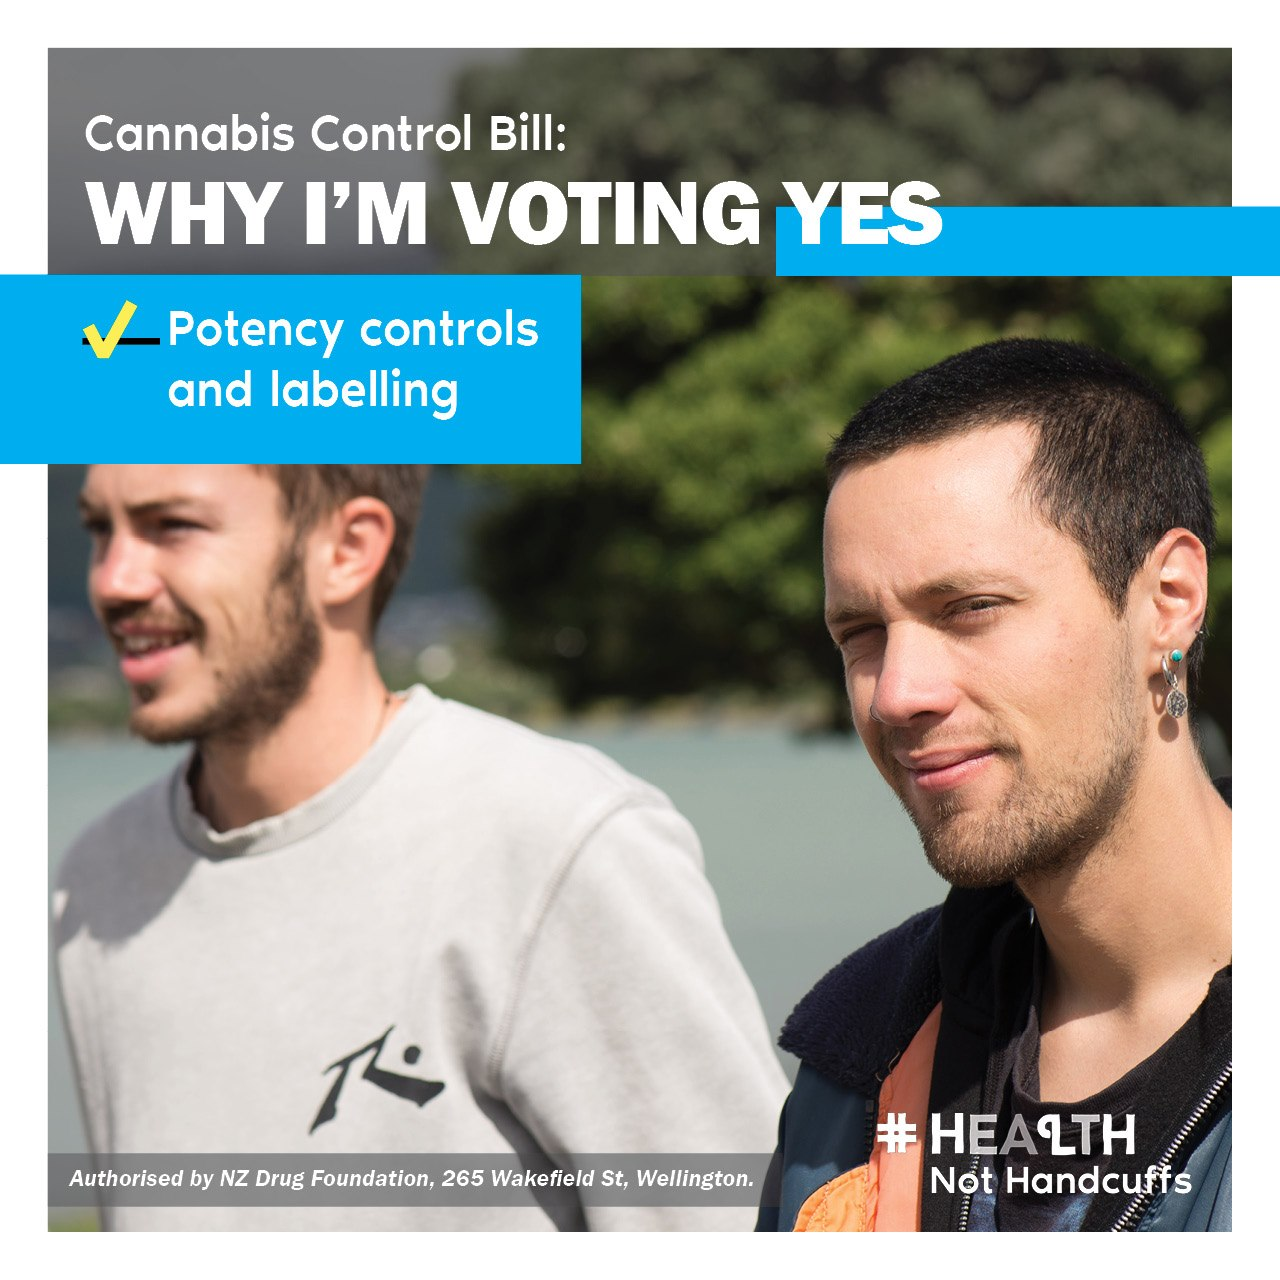 Why_Im_Voting_Yes_Potency_controls_and_labelling.jpg